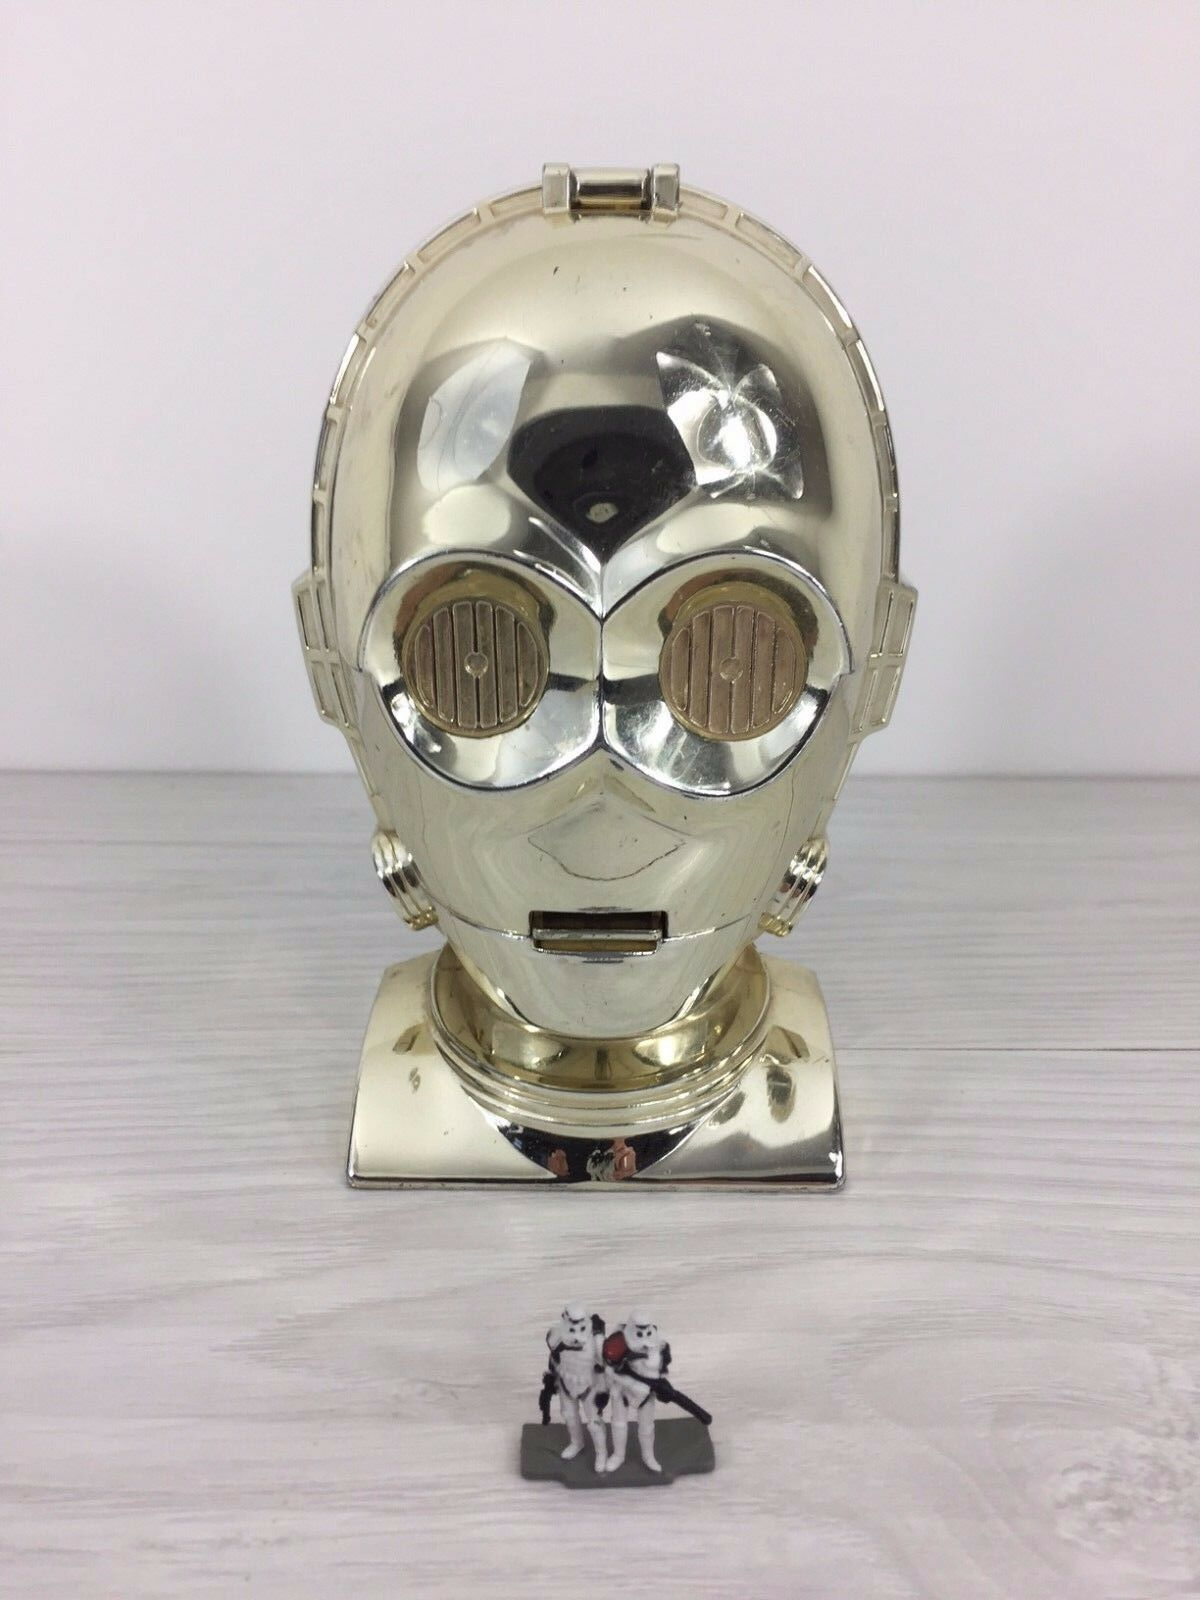 Primary image for 1994 Star Wars C-3PO head mid century steampunk deco modernist industrial design